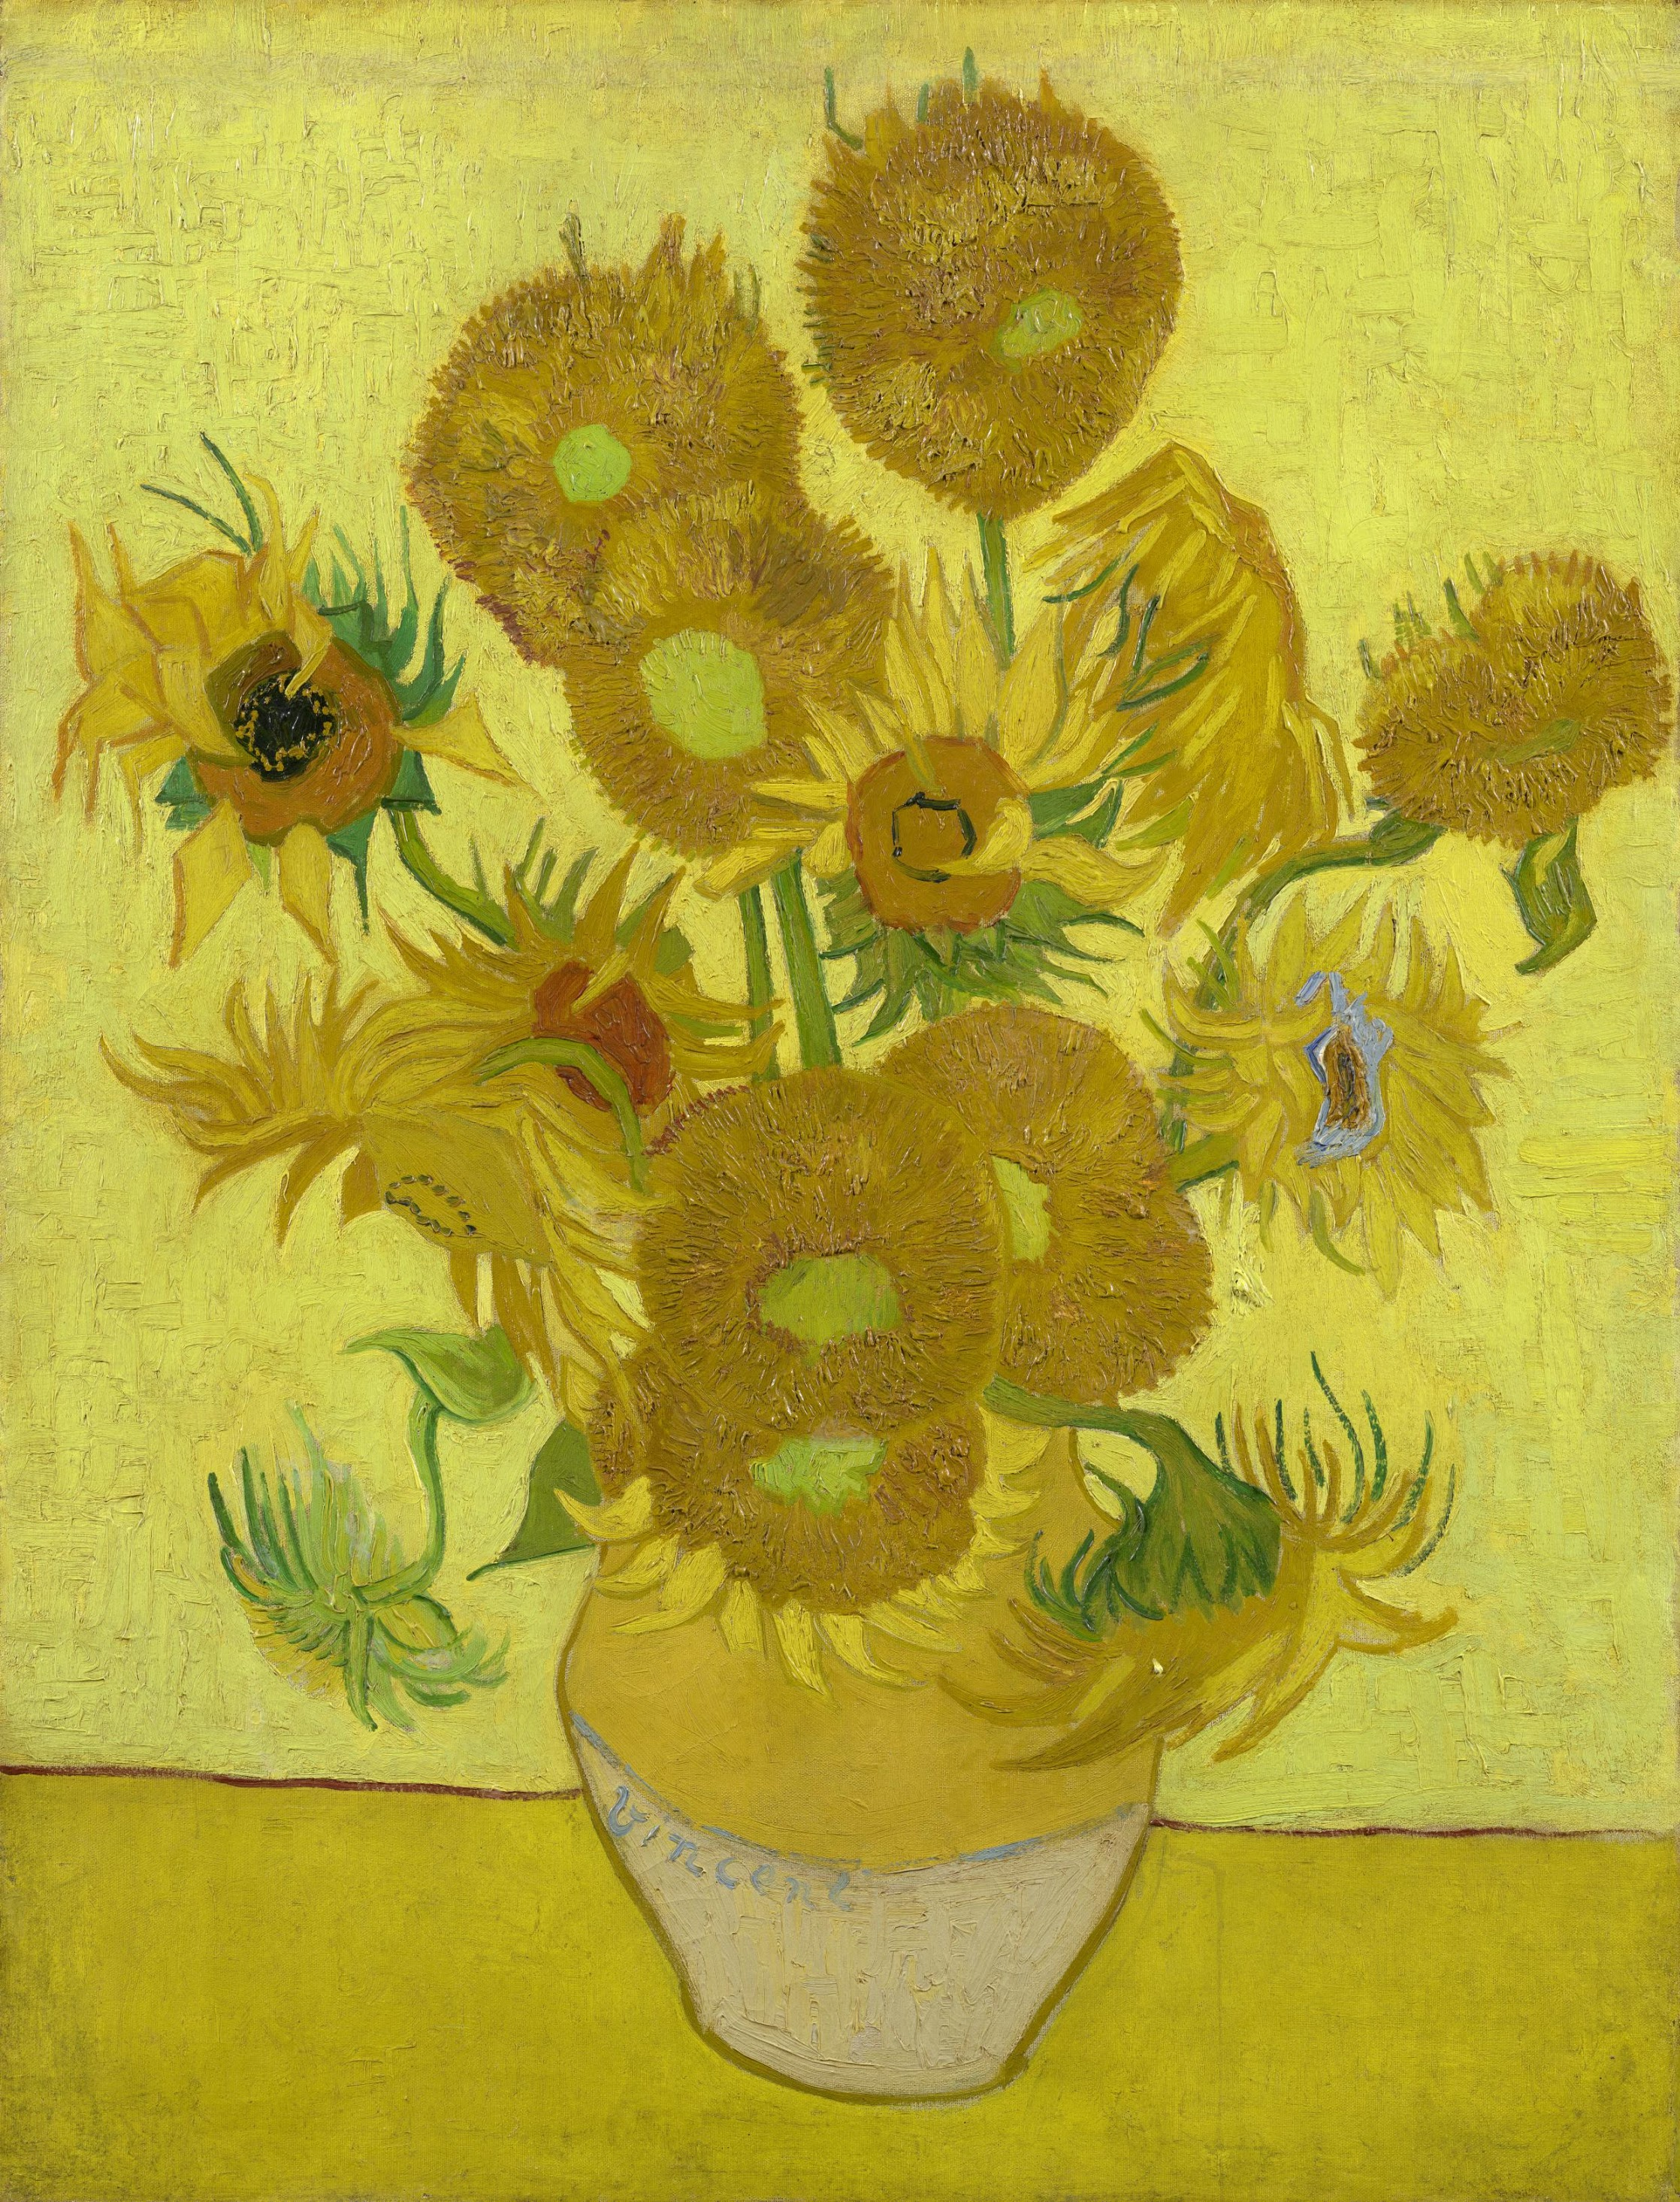 Image from  www.vangoghmuseum.nl